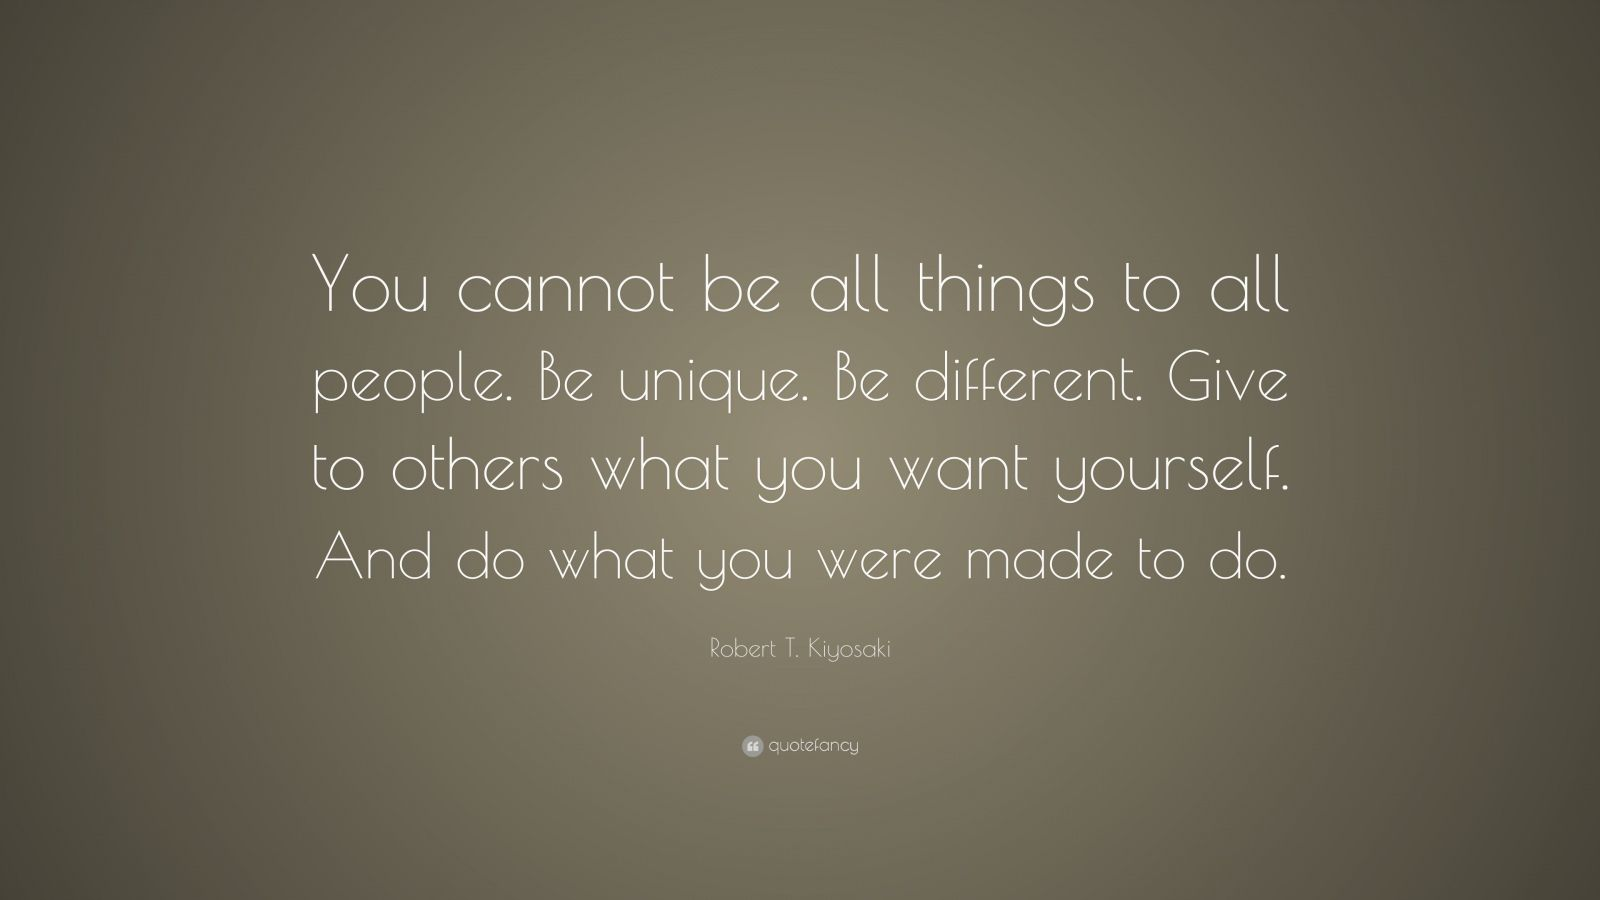 """Robert T. Kiyosaki Quote: """"You cannot be all things to all people. Be unique. Be different. Give to others what you want yourself. And do what you were made to do."""""""